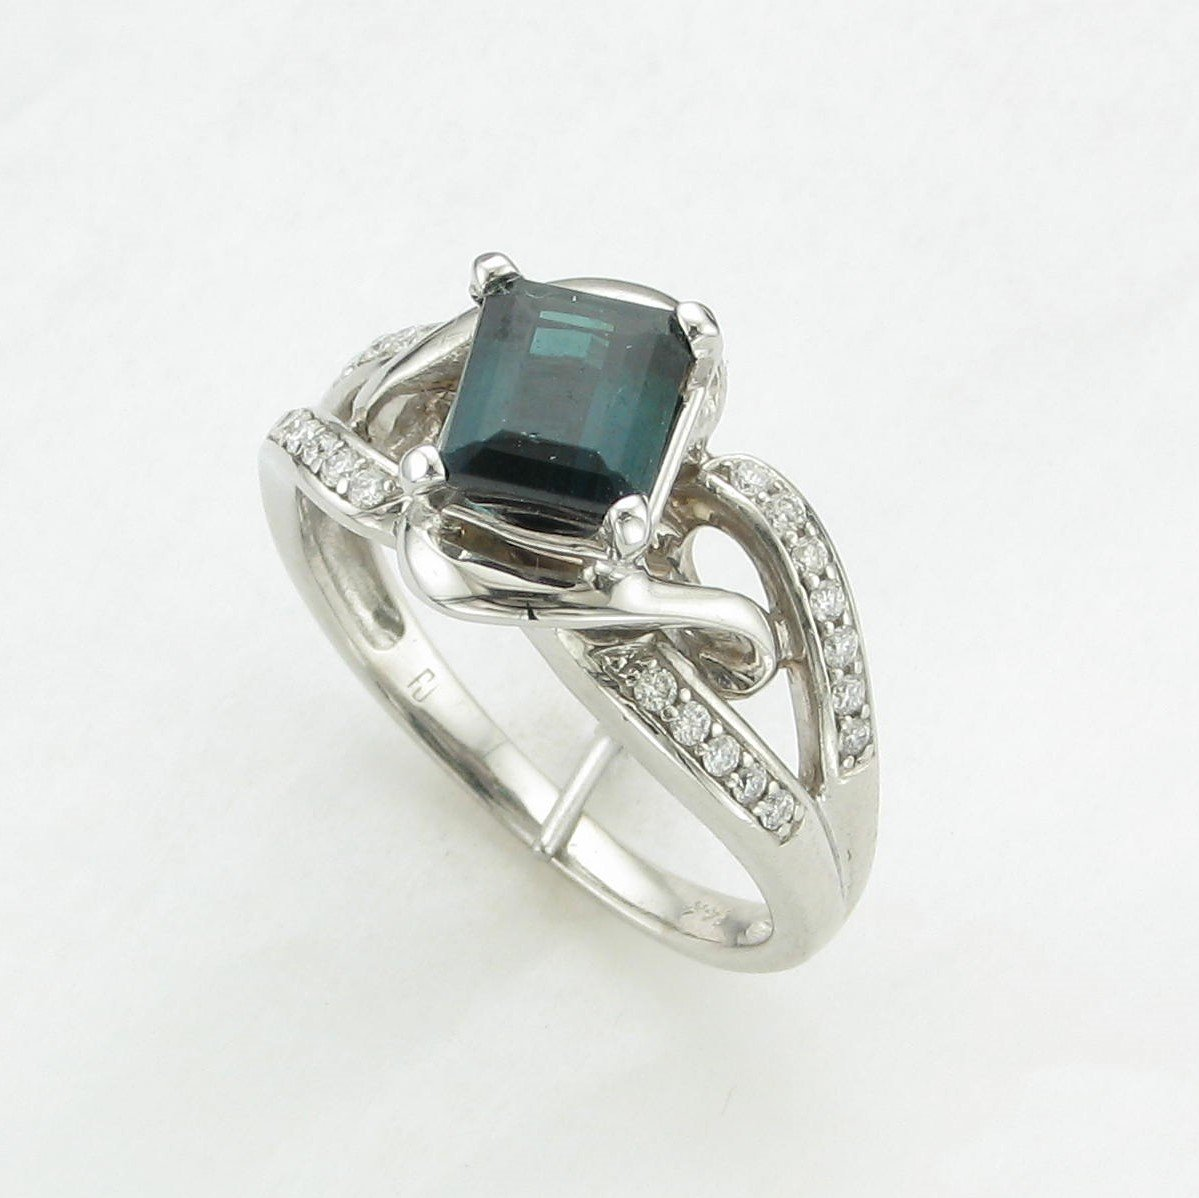 1.25ct Blue/Green Tourmaline and Diamond Ring set in 14K White Gold